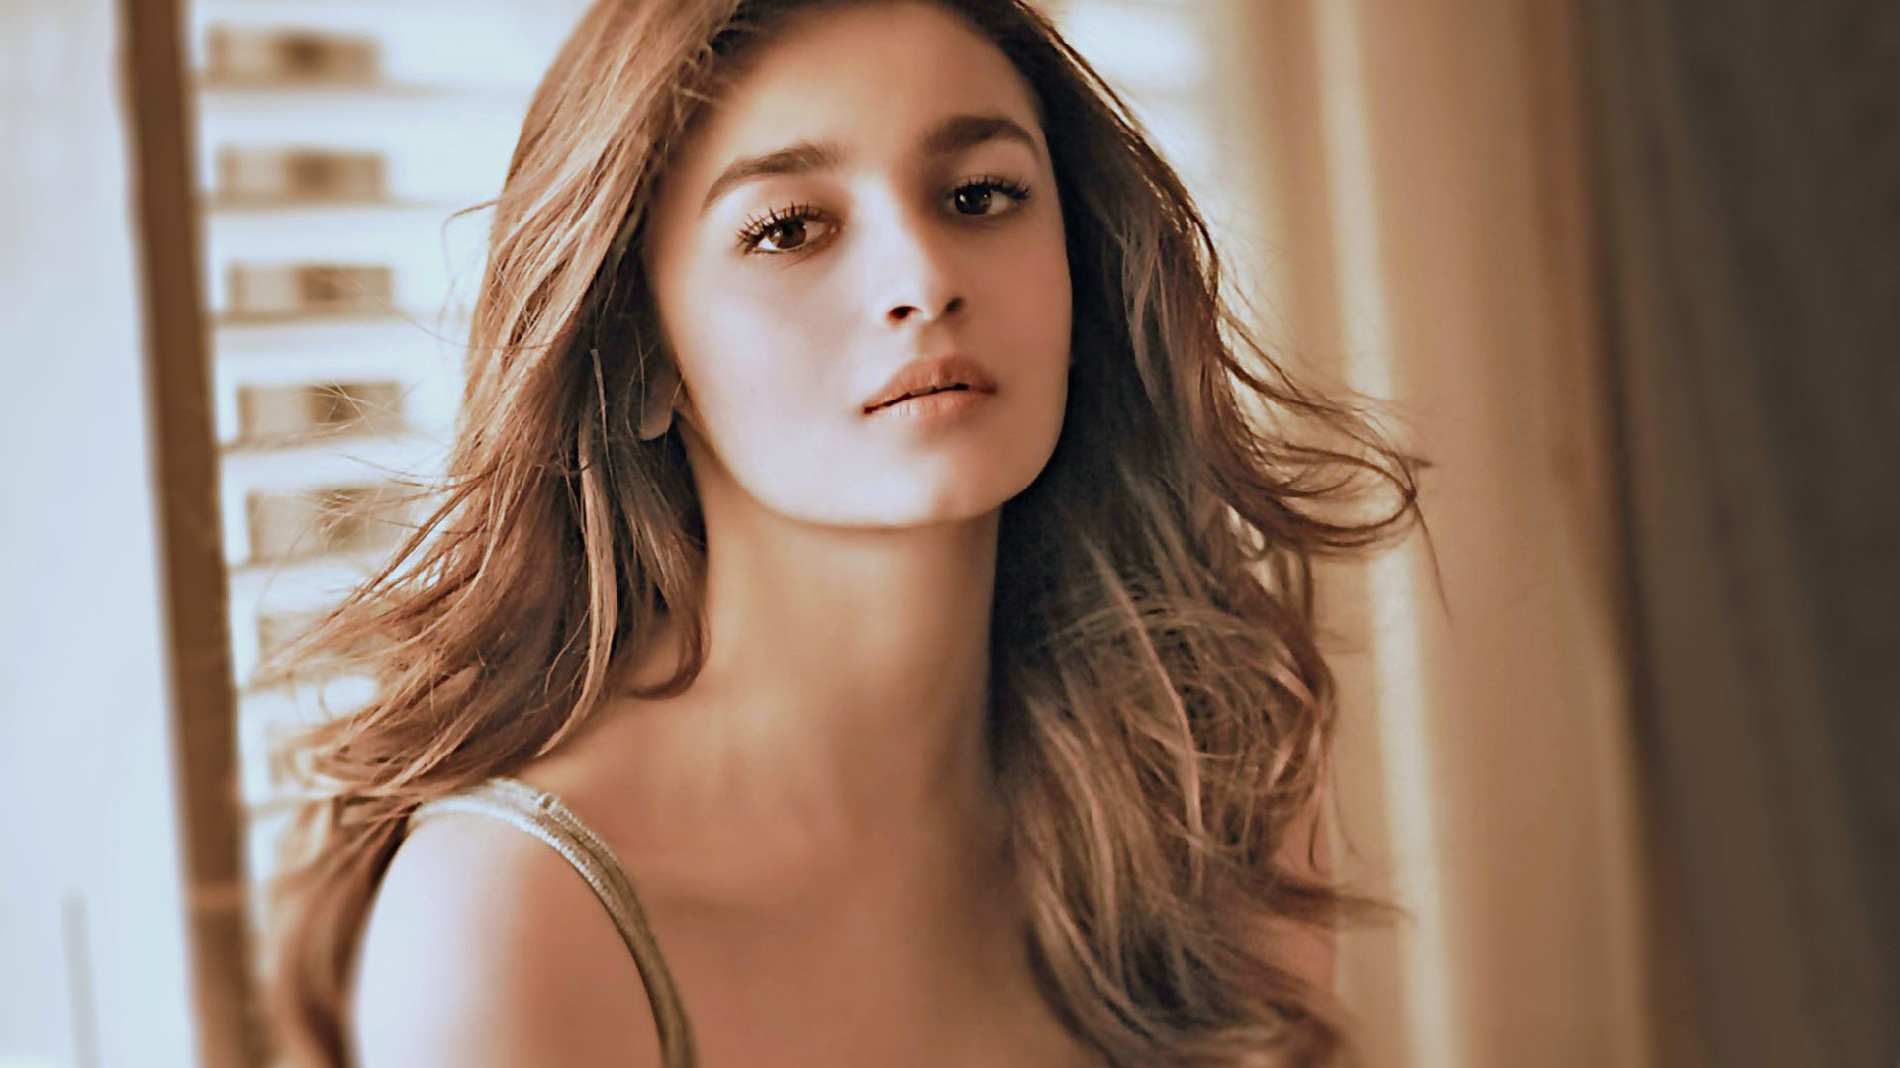 fantastic alia bhatt download computer free hd background images